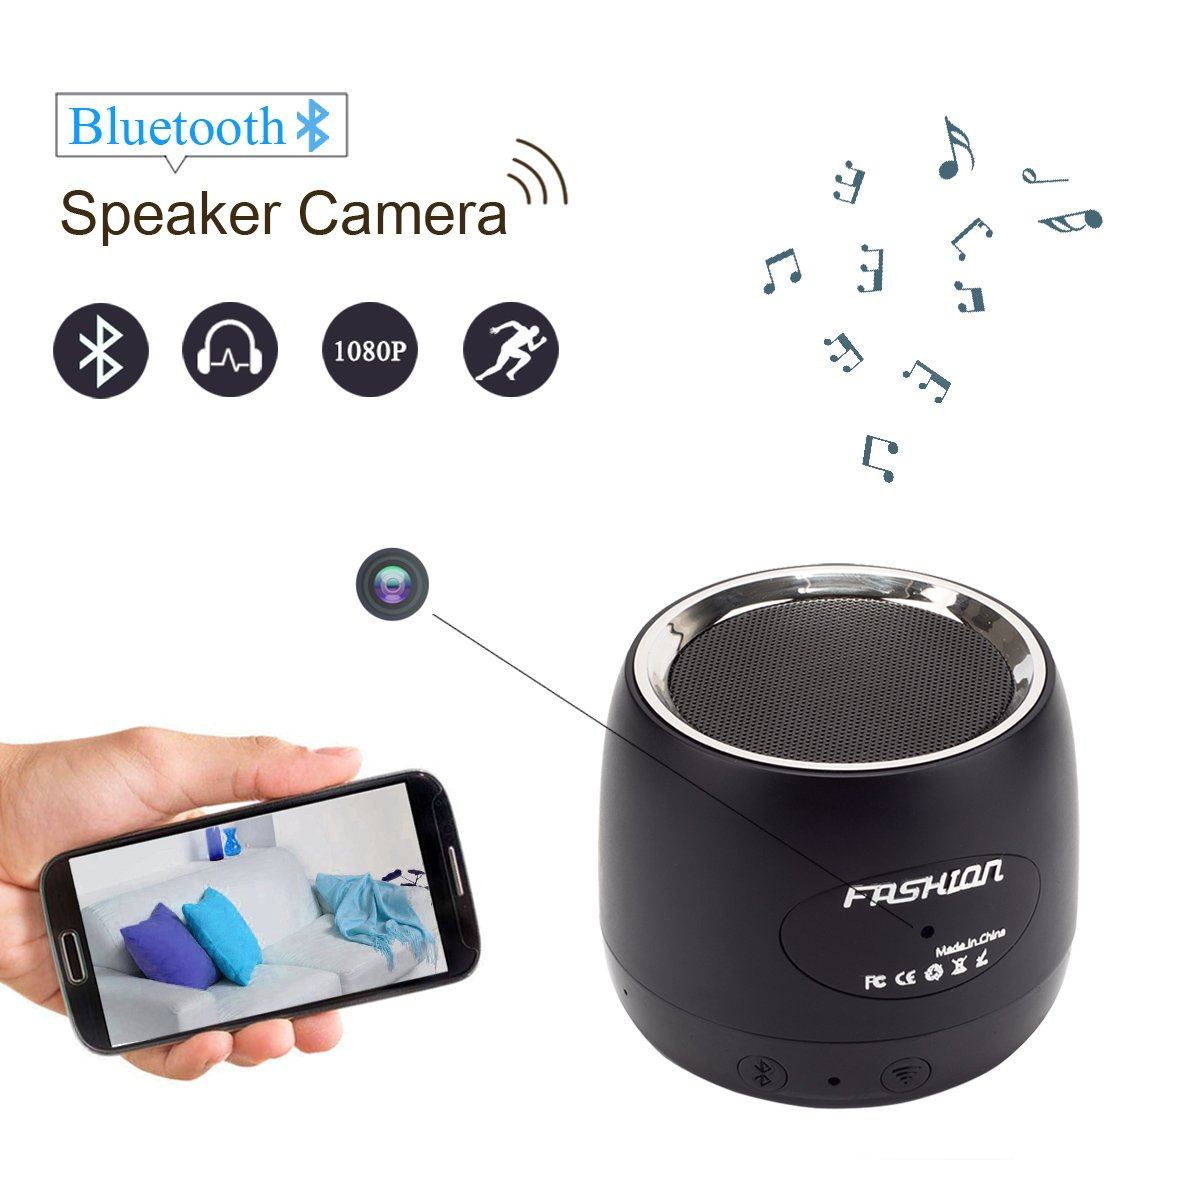 HongSheng 1080P Bluetooth Speaker Wireless Wifi Hidden Camera Motion Detection/Real-Time View/Loop Recording/Music Player, Spy Nanny Cam For Home Security,Capacity Up To 128